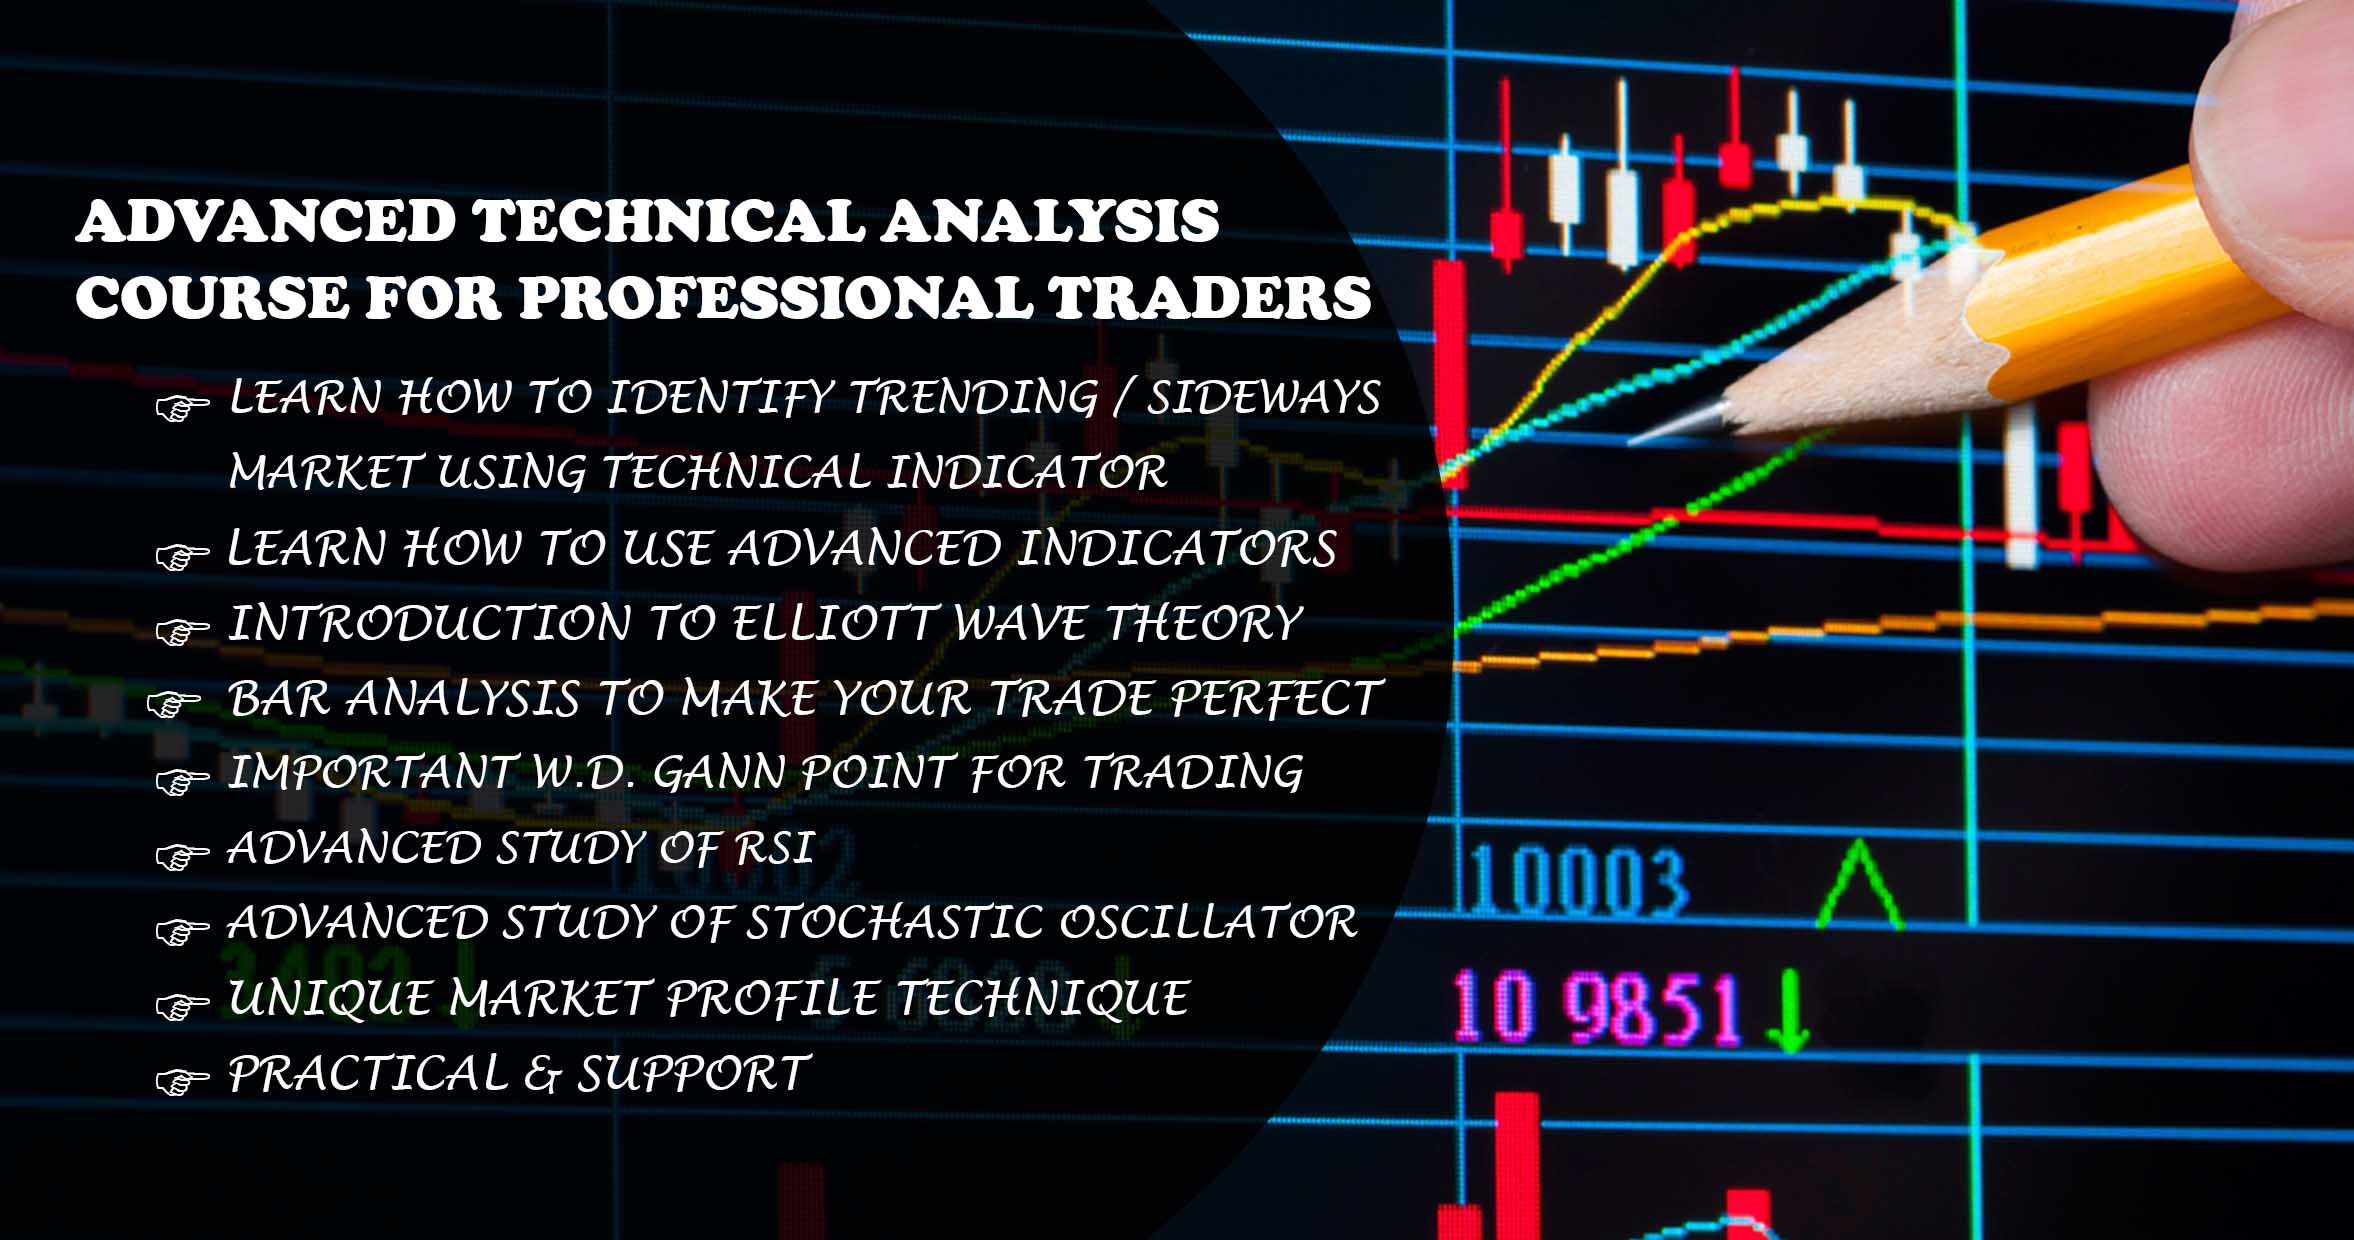 Advanced Technical Analysis Course